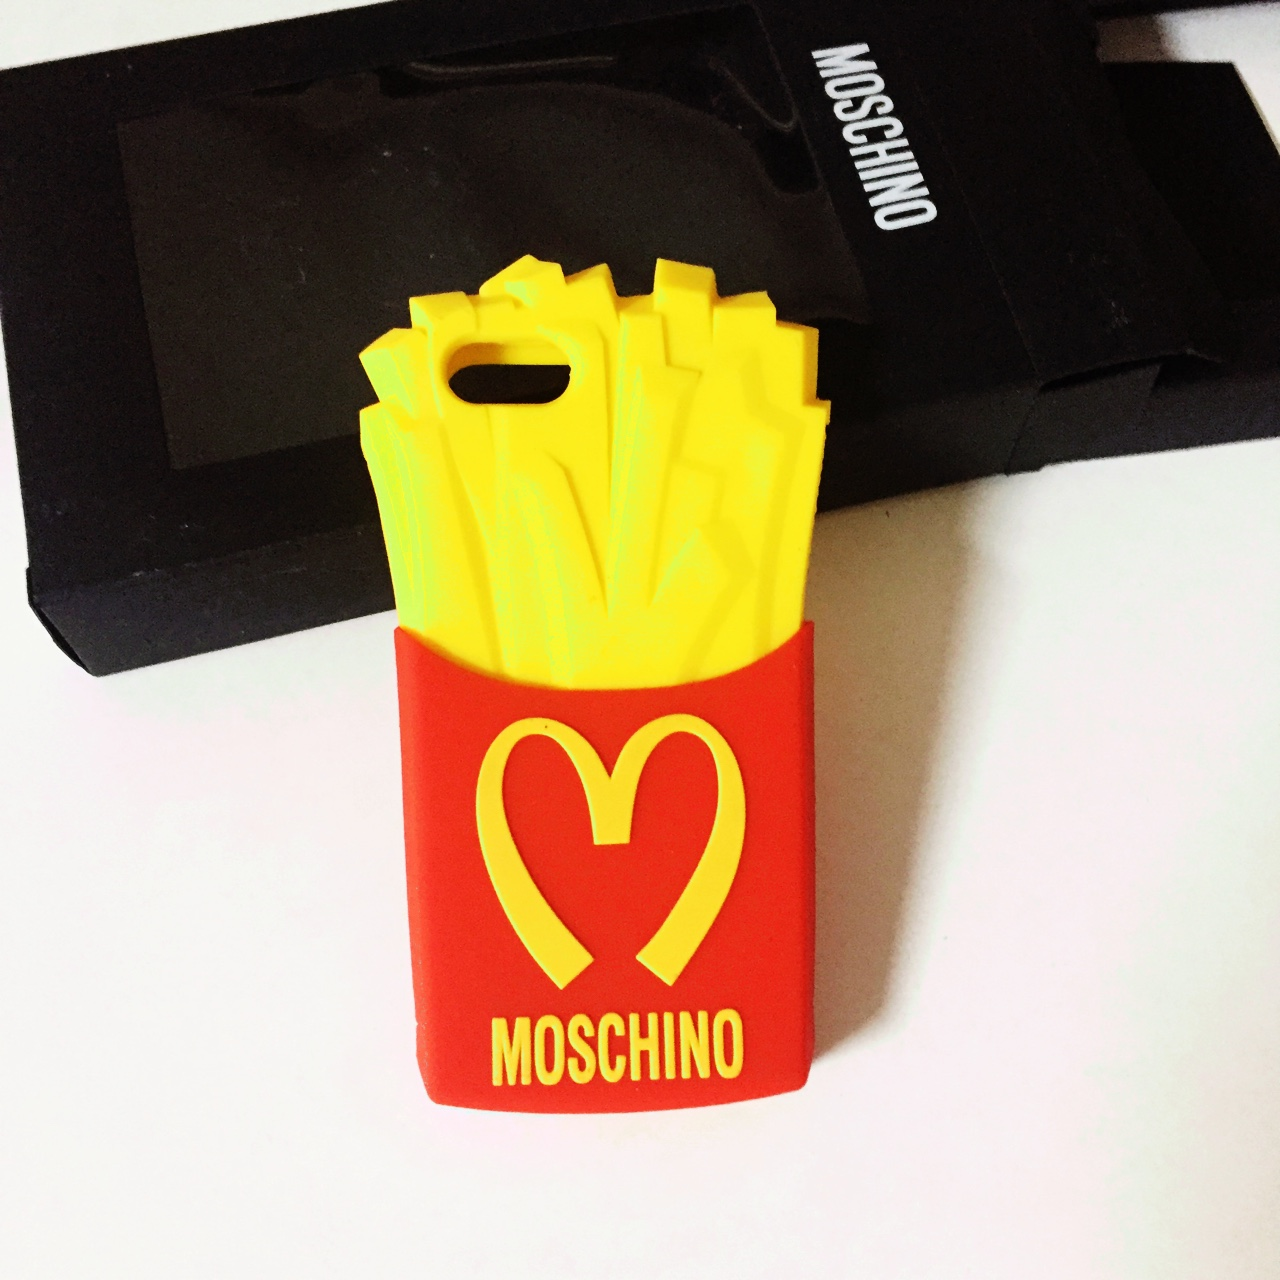 Moschino cover Per iPhone 5/5S/5C patatine fritte...